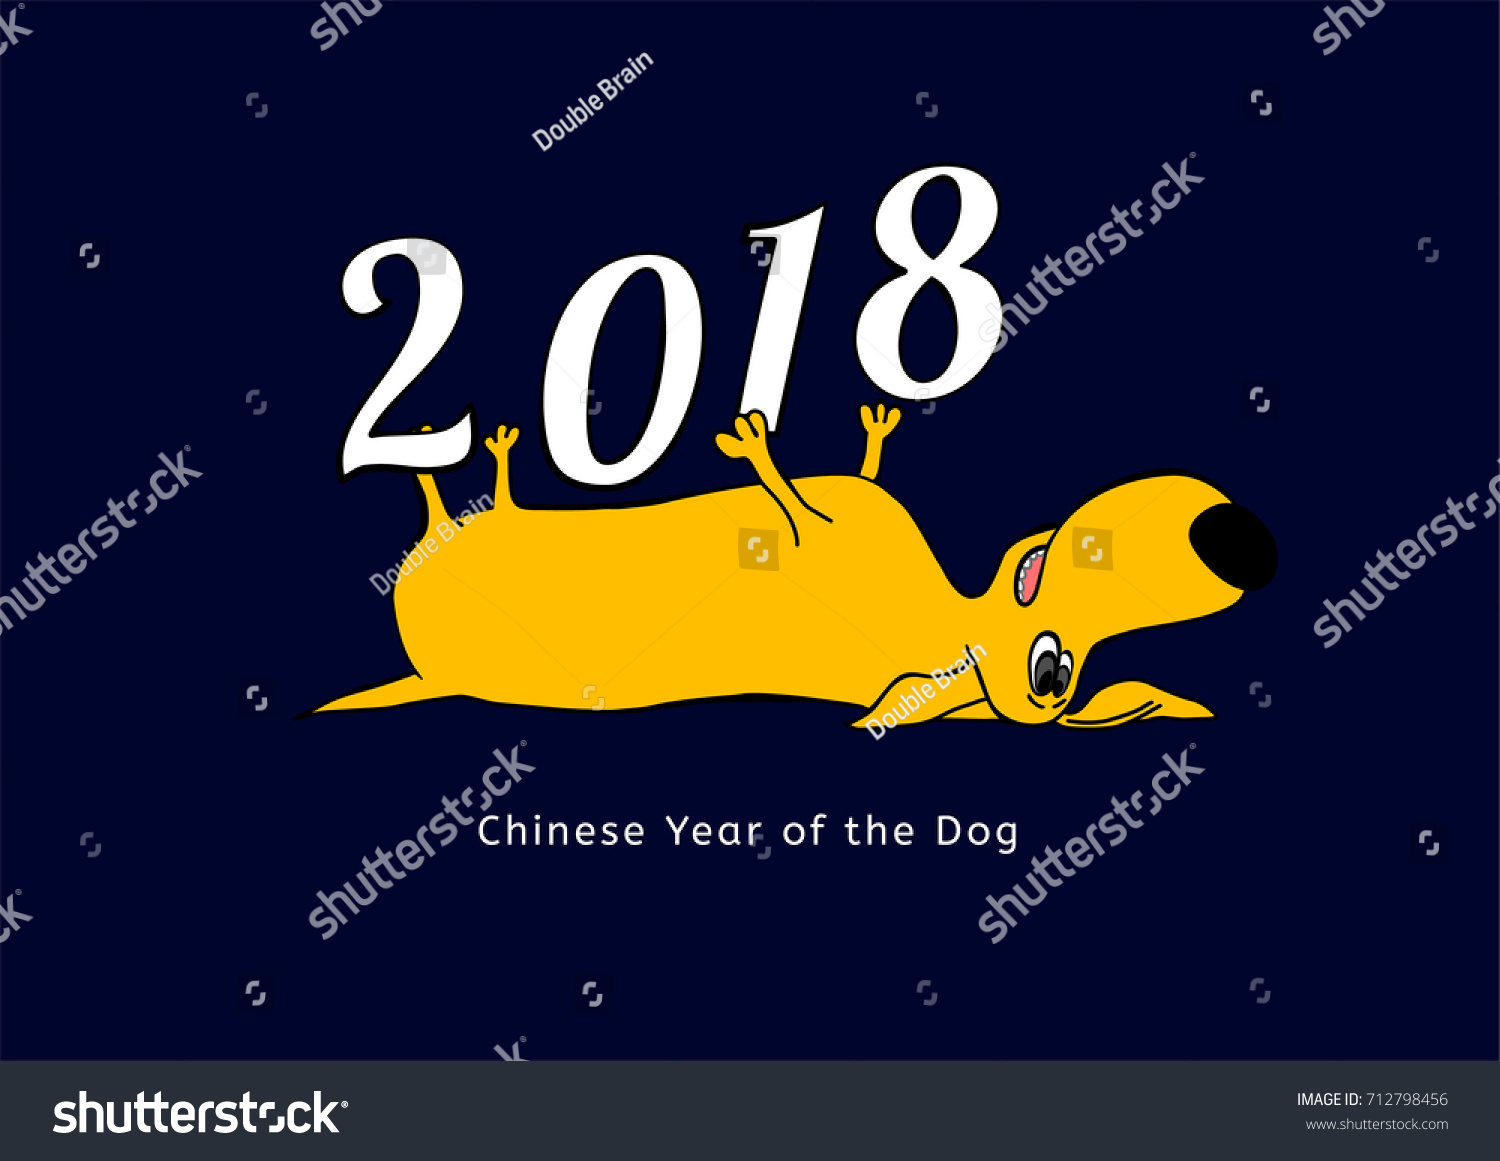 2018 happy new year greeting card stock vector 712798456 shutterstock 2018 happy new year greeting card yellow dachshund in cartoonish style with white figures on kristyandbryce Gallery